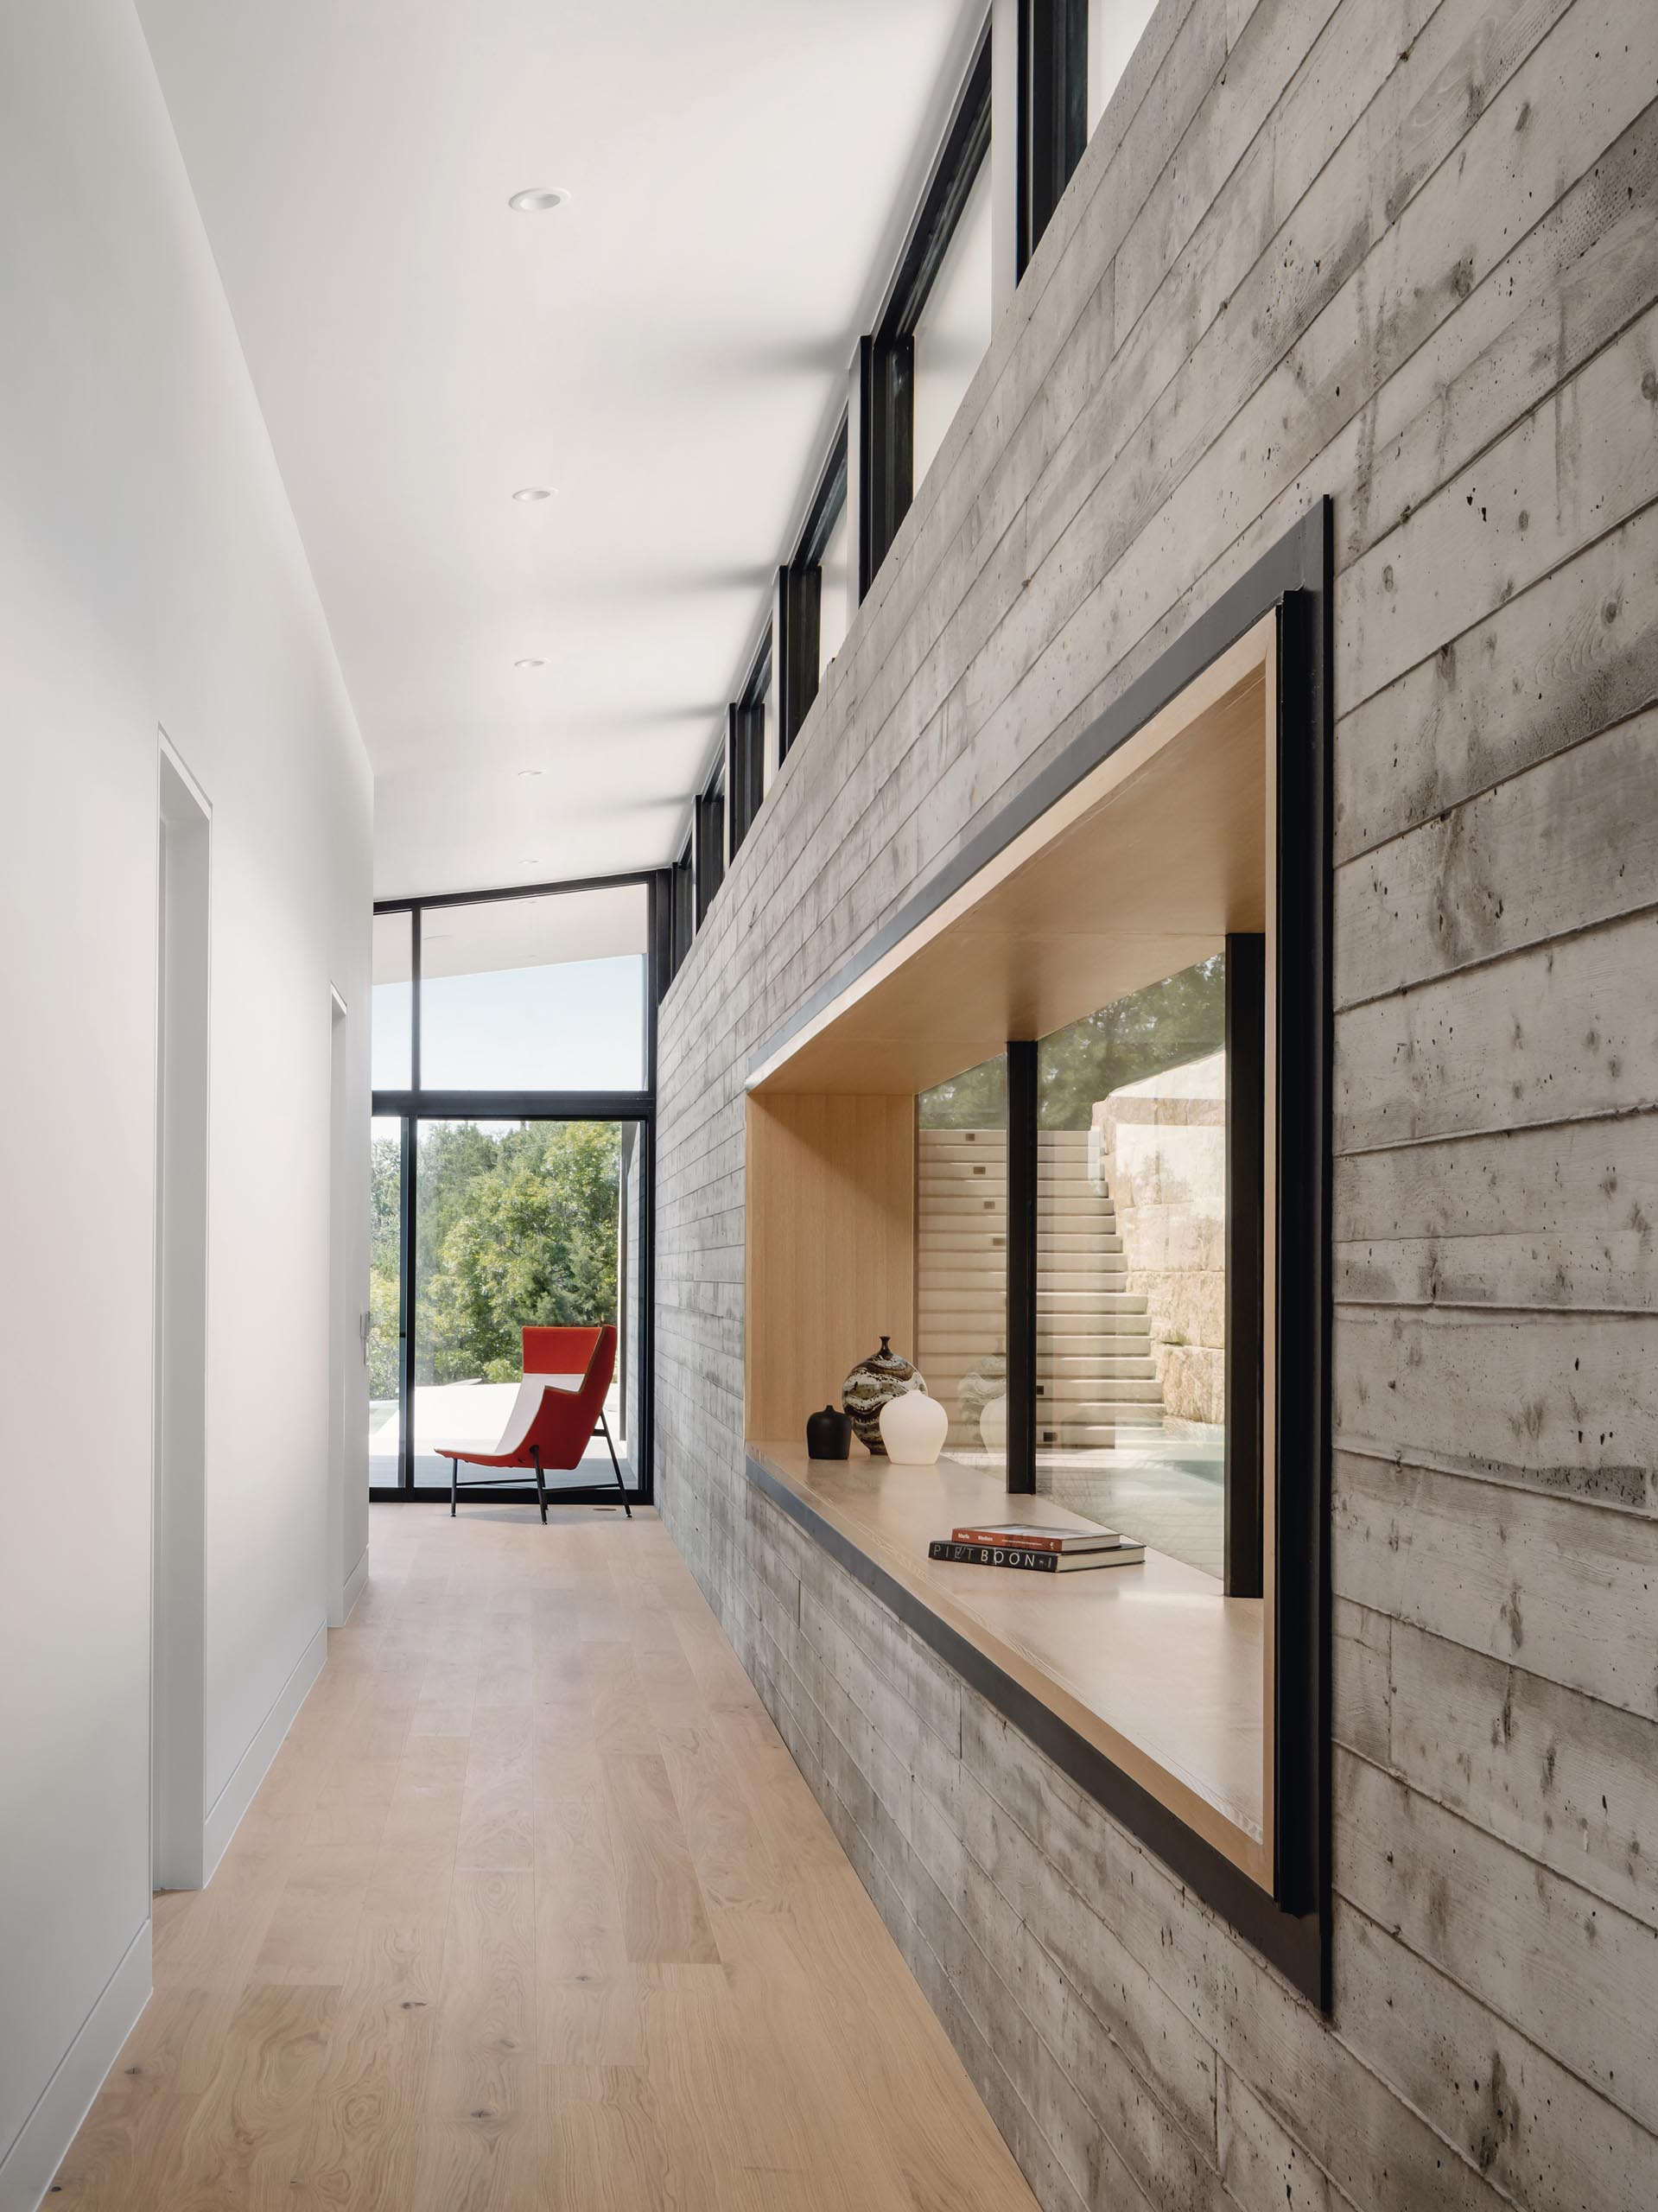 A hallway connecting the two living rooms provides a close-up look at the board-formed concrete wall, and access to the bedrooms and bathrooms.